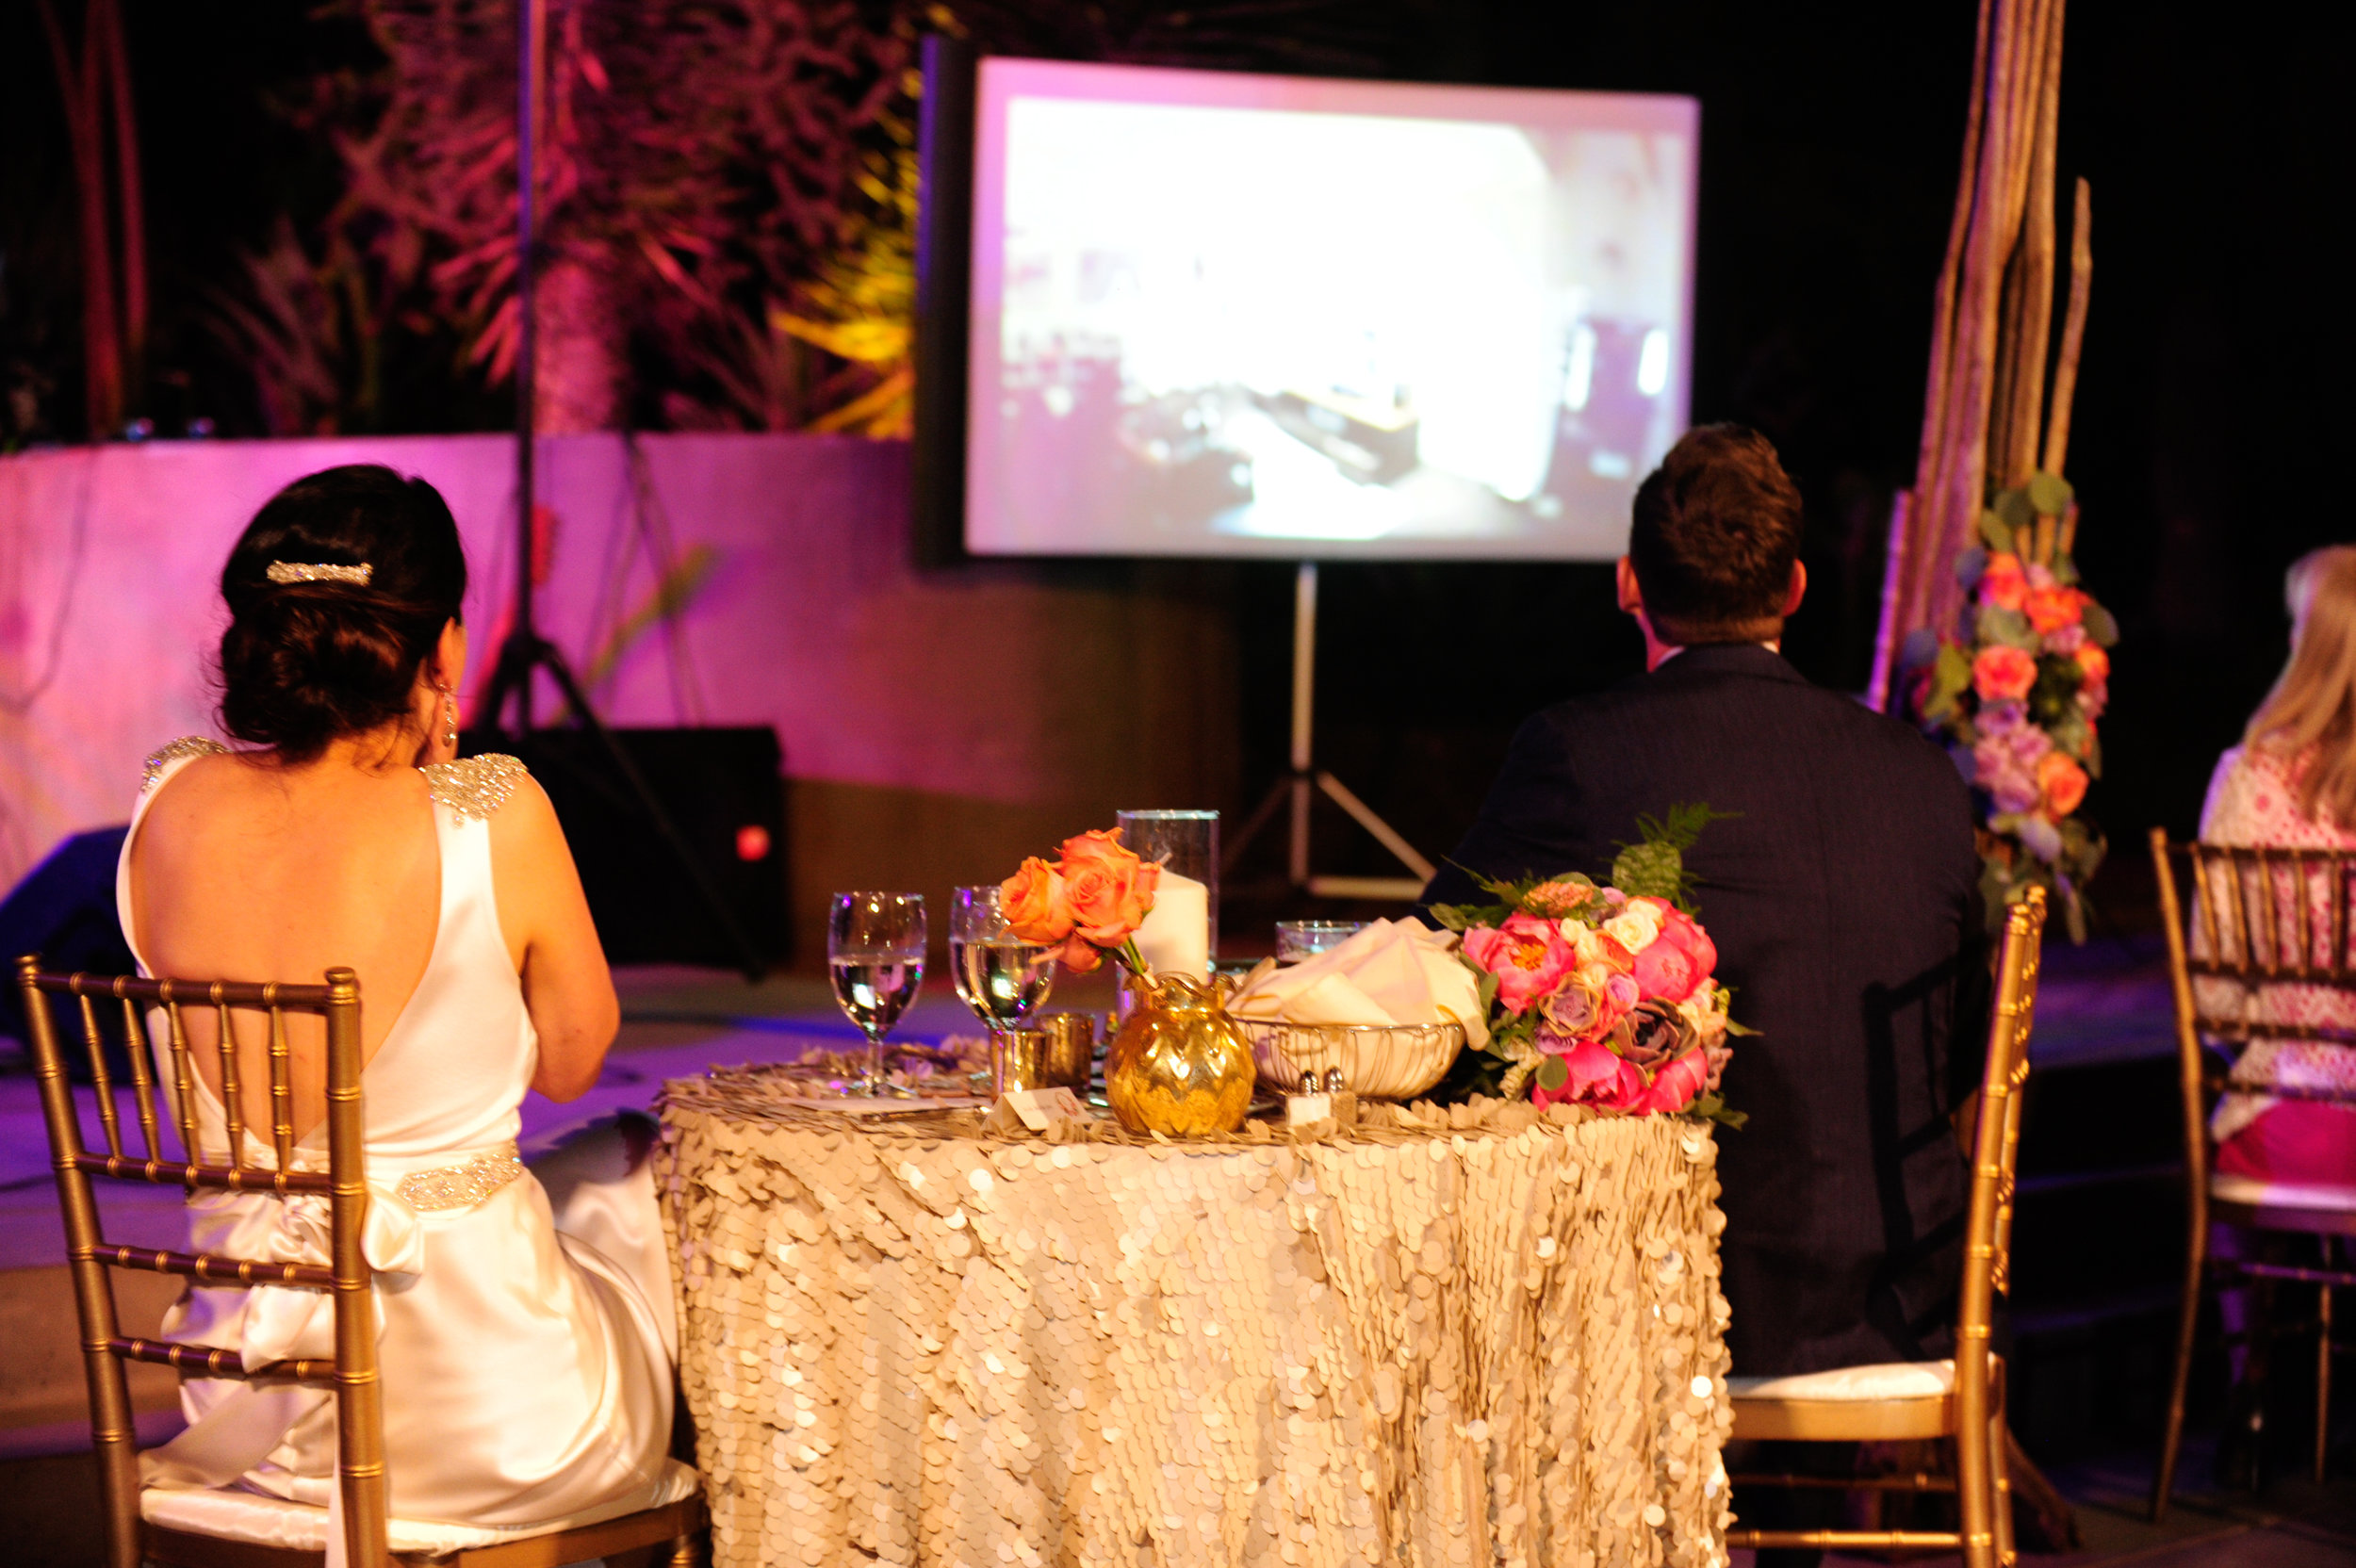 31 sweetheart table bride and groom table bride and groom at reception Mod Wed Photography Life Design Events.jpg